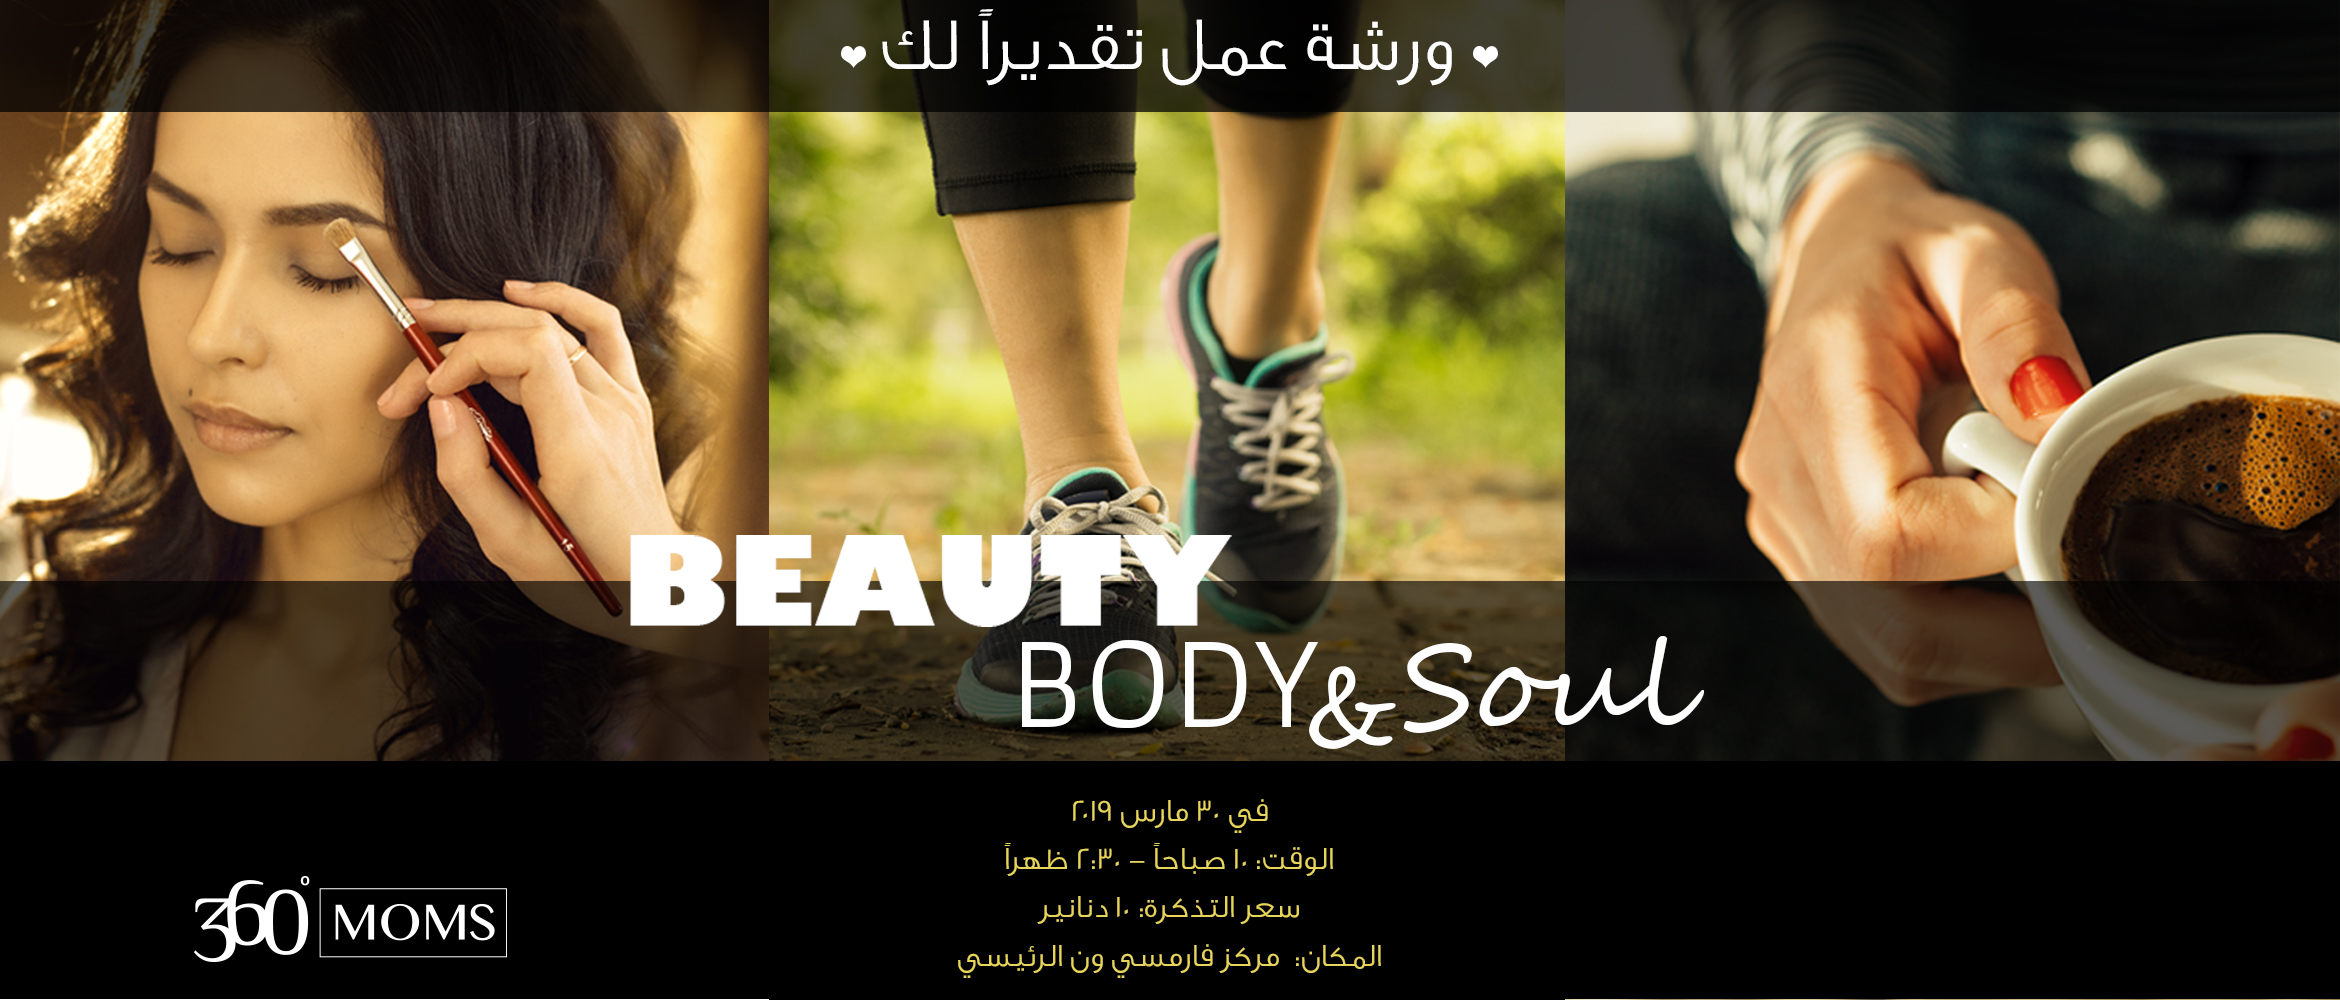 Beauty, Body and Soul